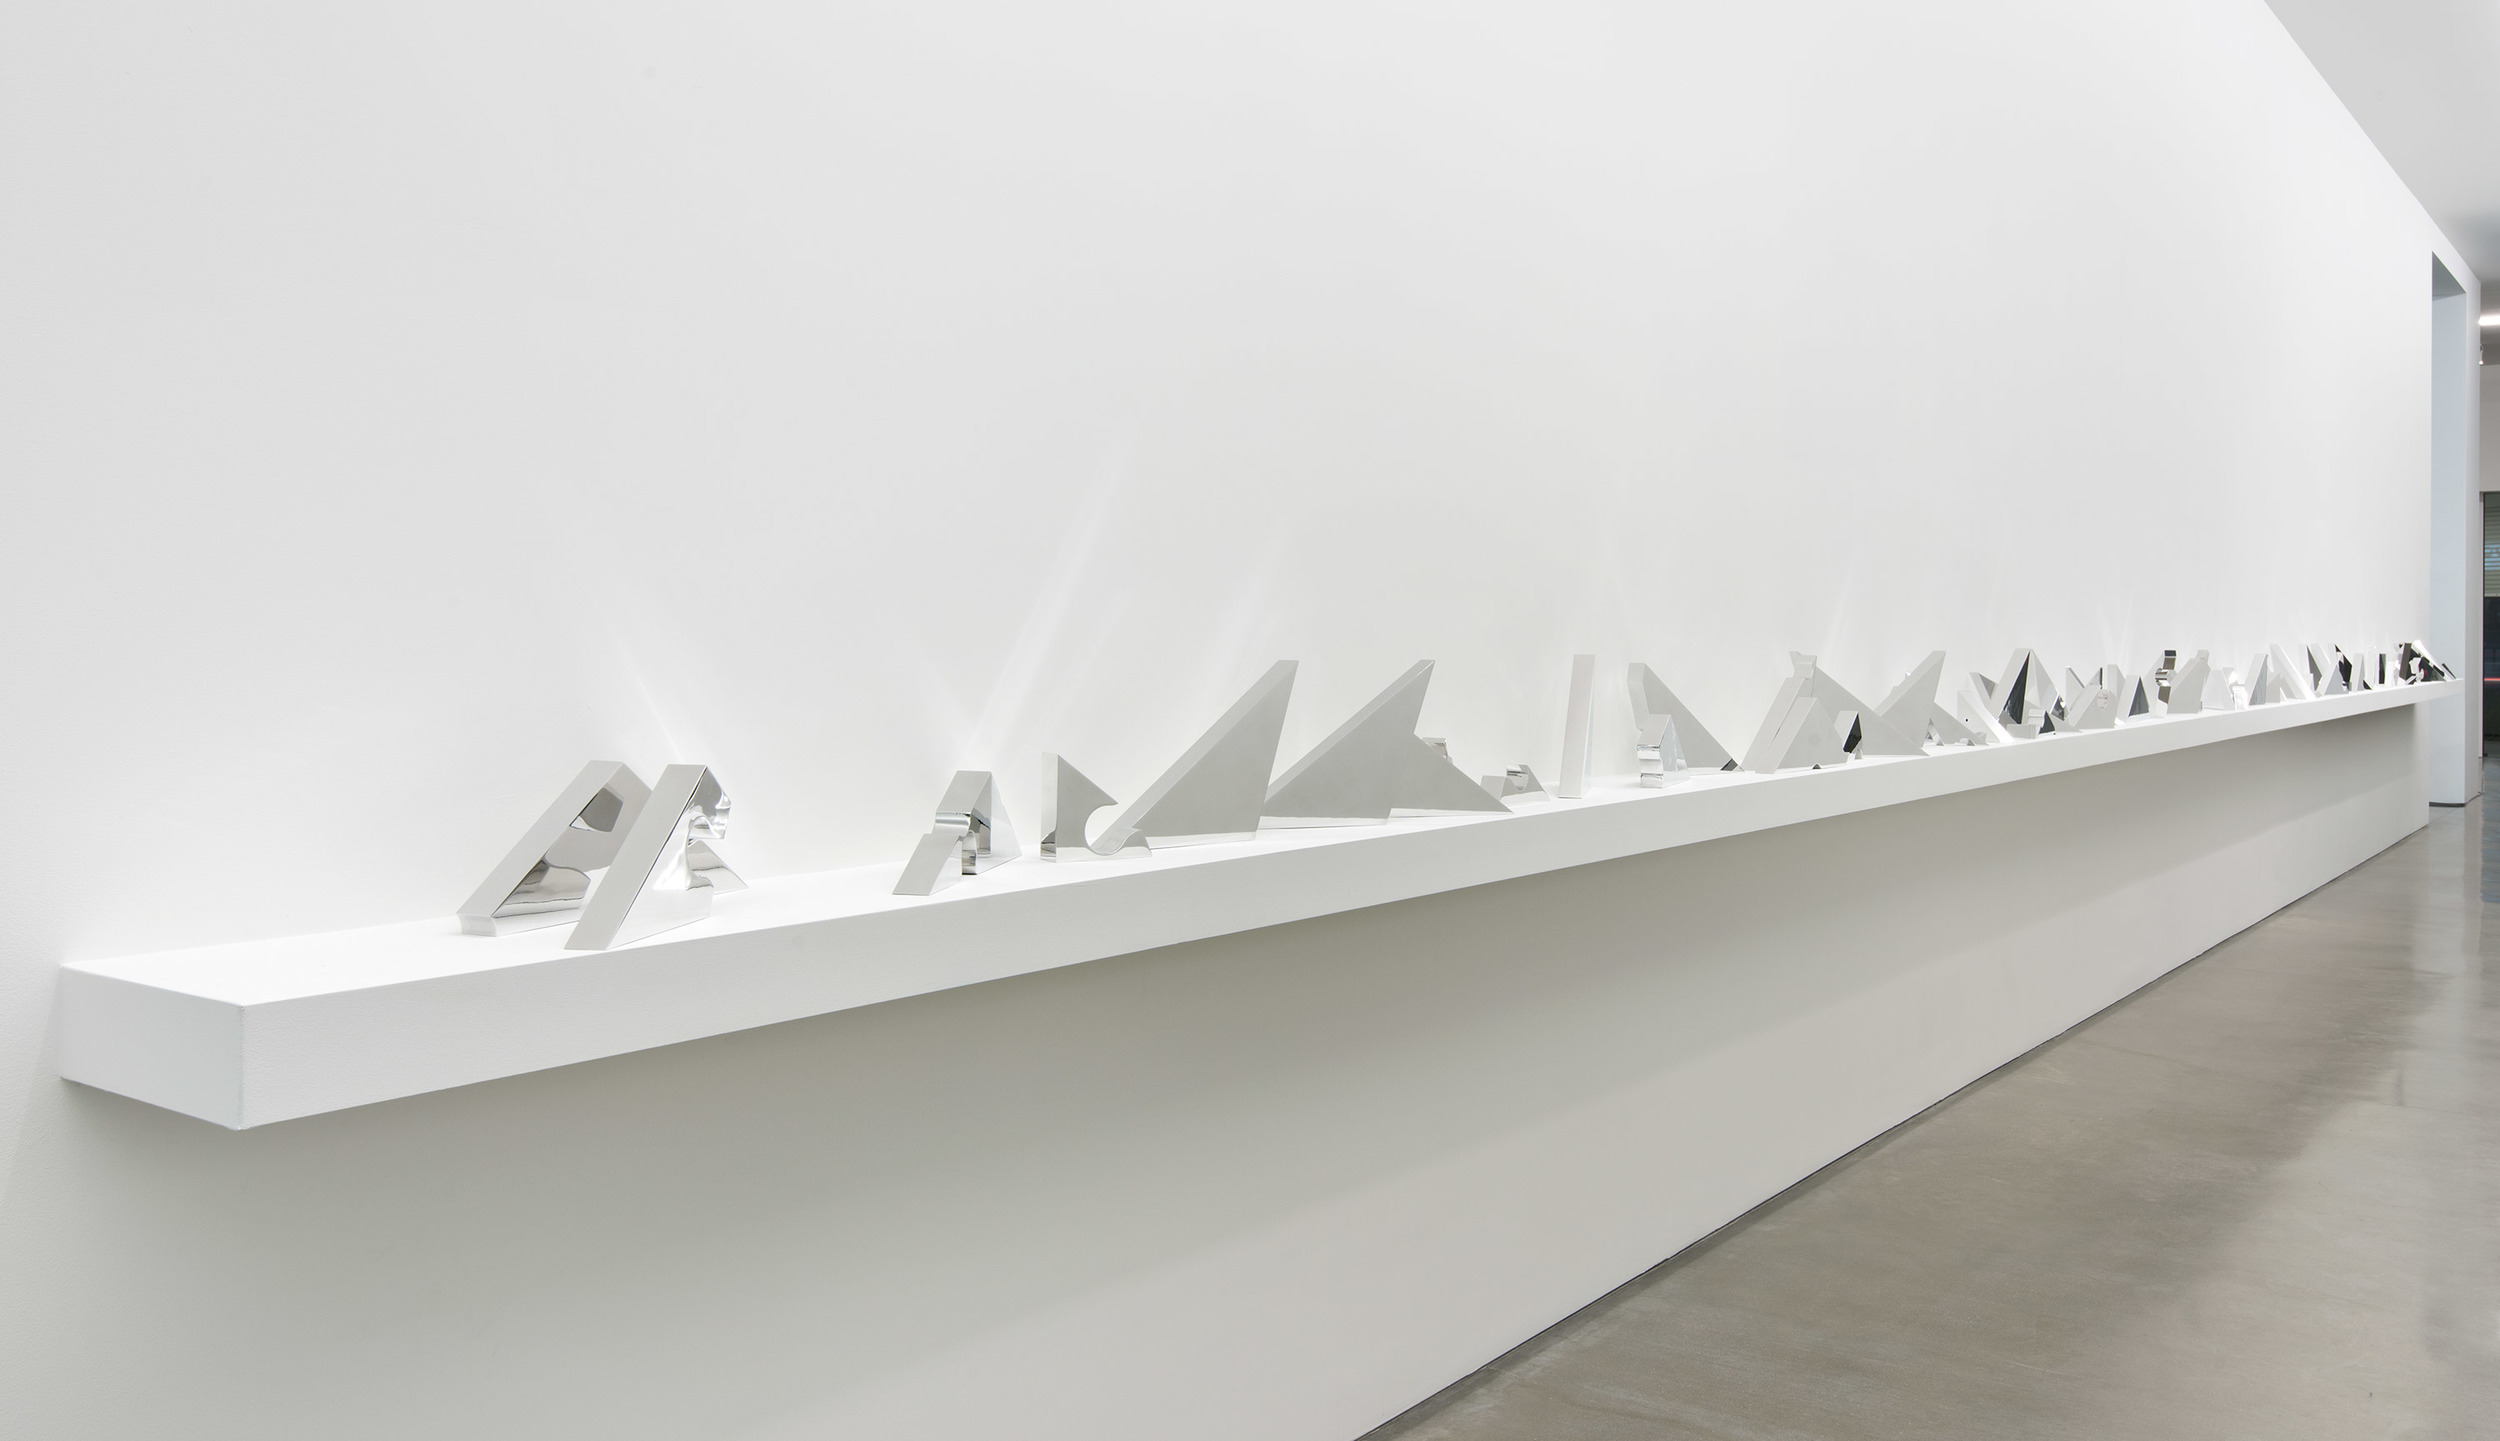 Aluminum Remnants [Copper Surrogate (90˚ Bend, 30˚/60˚, Antidiagonal Bisection:February 21, 2014, Los Angeles,California)]    2014   Polished aluminum  Dimensions variable, 80 parts   Selected Bodies of Work, 2014